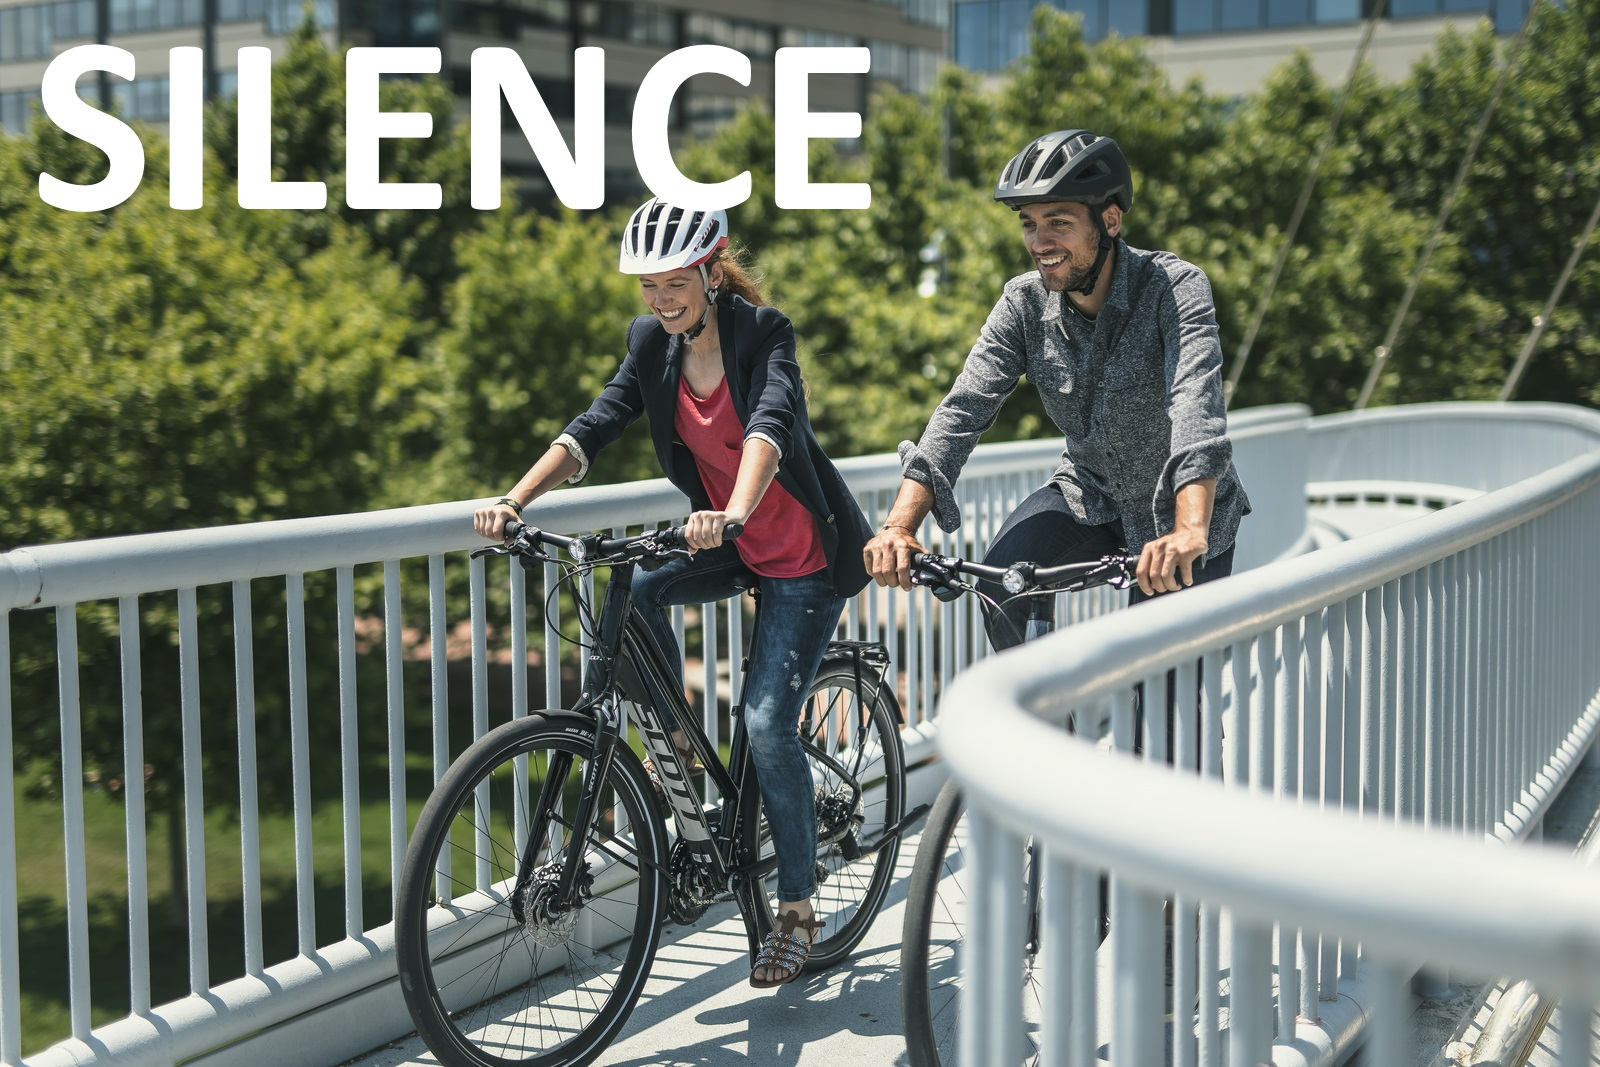 silence action image 2018 BIKE scott sports 77A9422